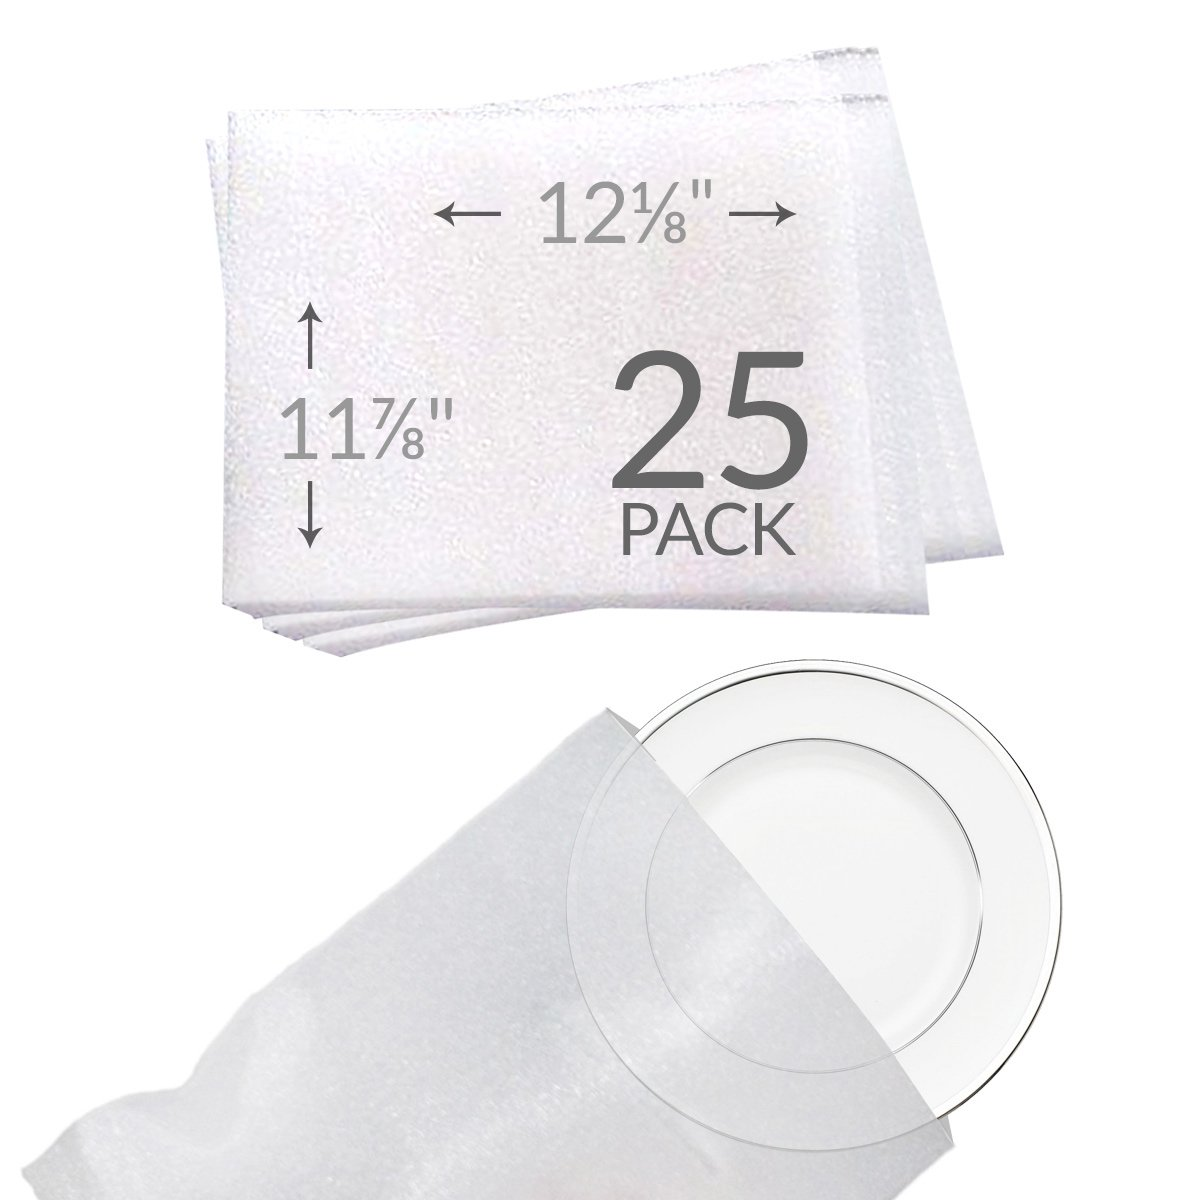 """UBOXES 11 7/8""""x 12 1/8"""" Foam Pouches for Plates (25 Pack) Protect Dishes"""